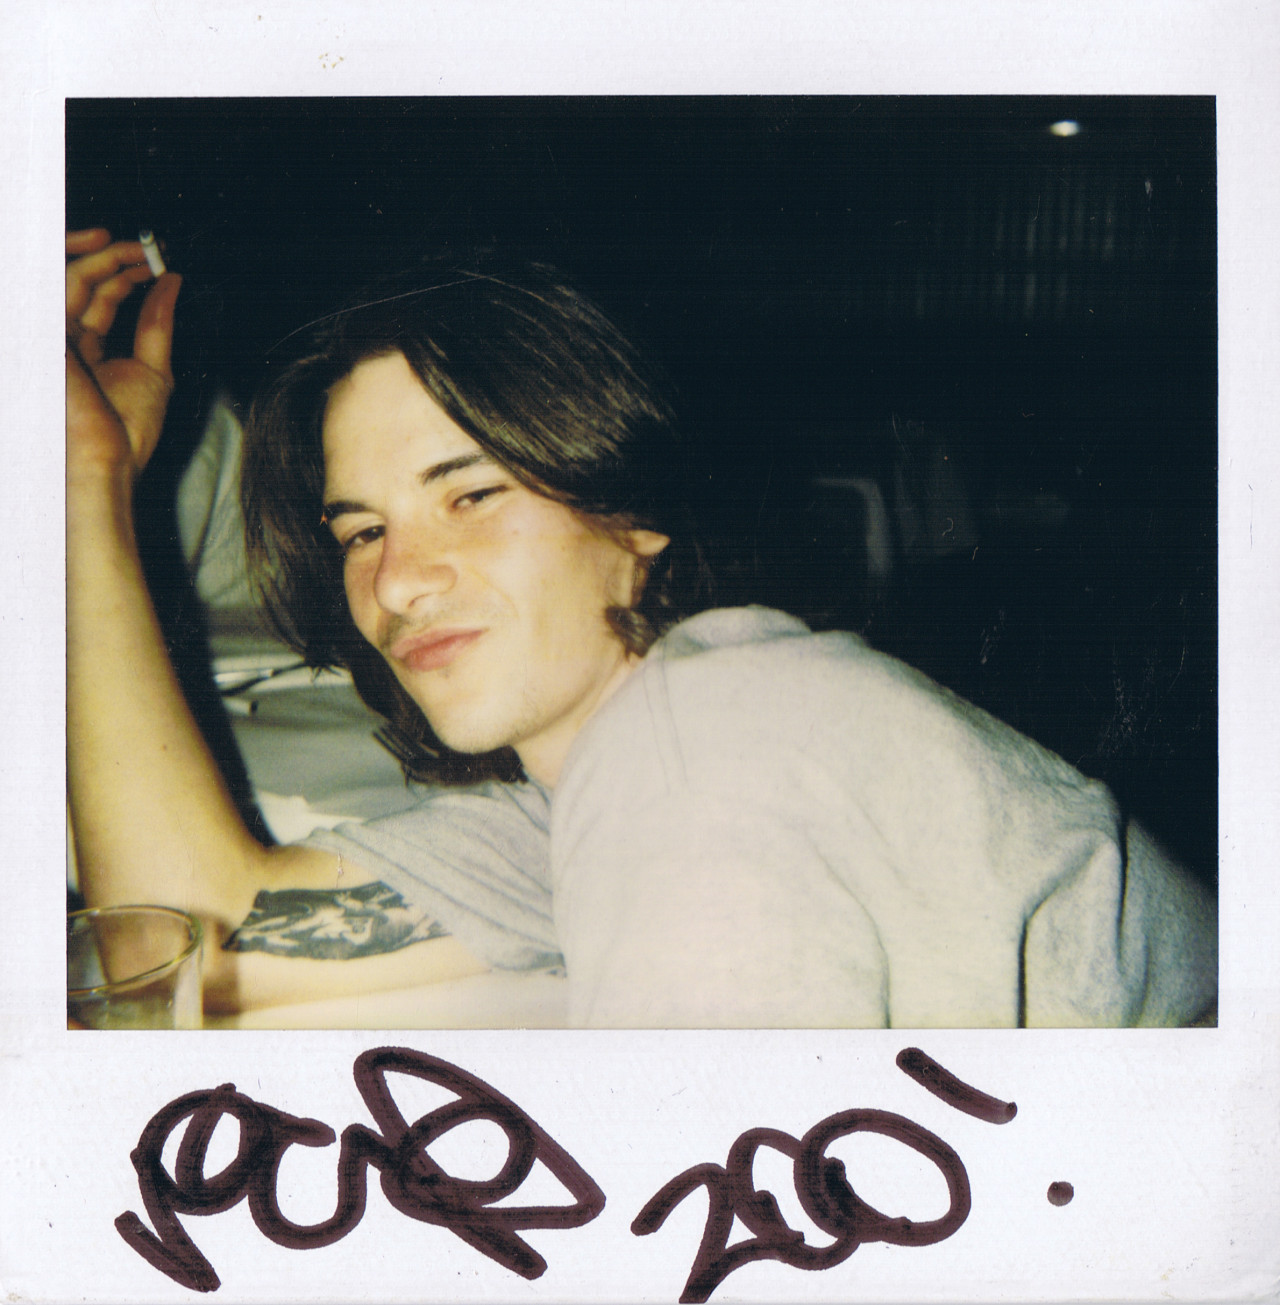 Justin Pierce aka Casper (Photo courtesy Gunars Elmuts)